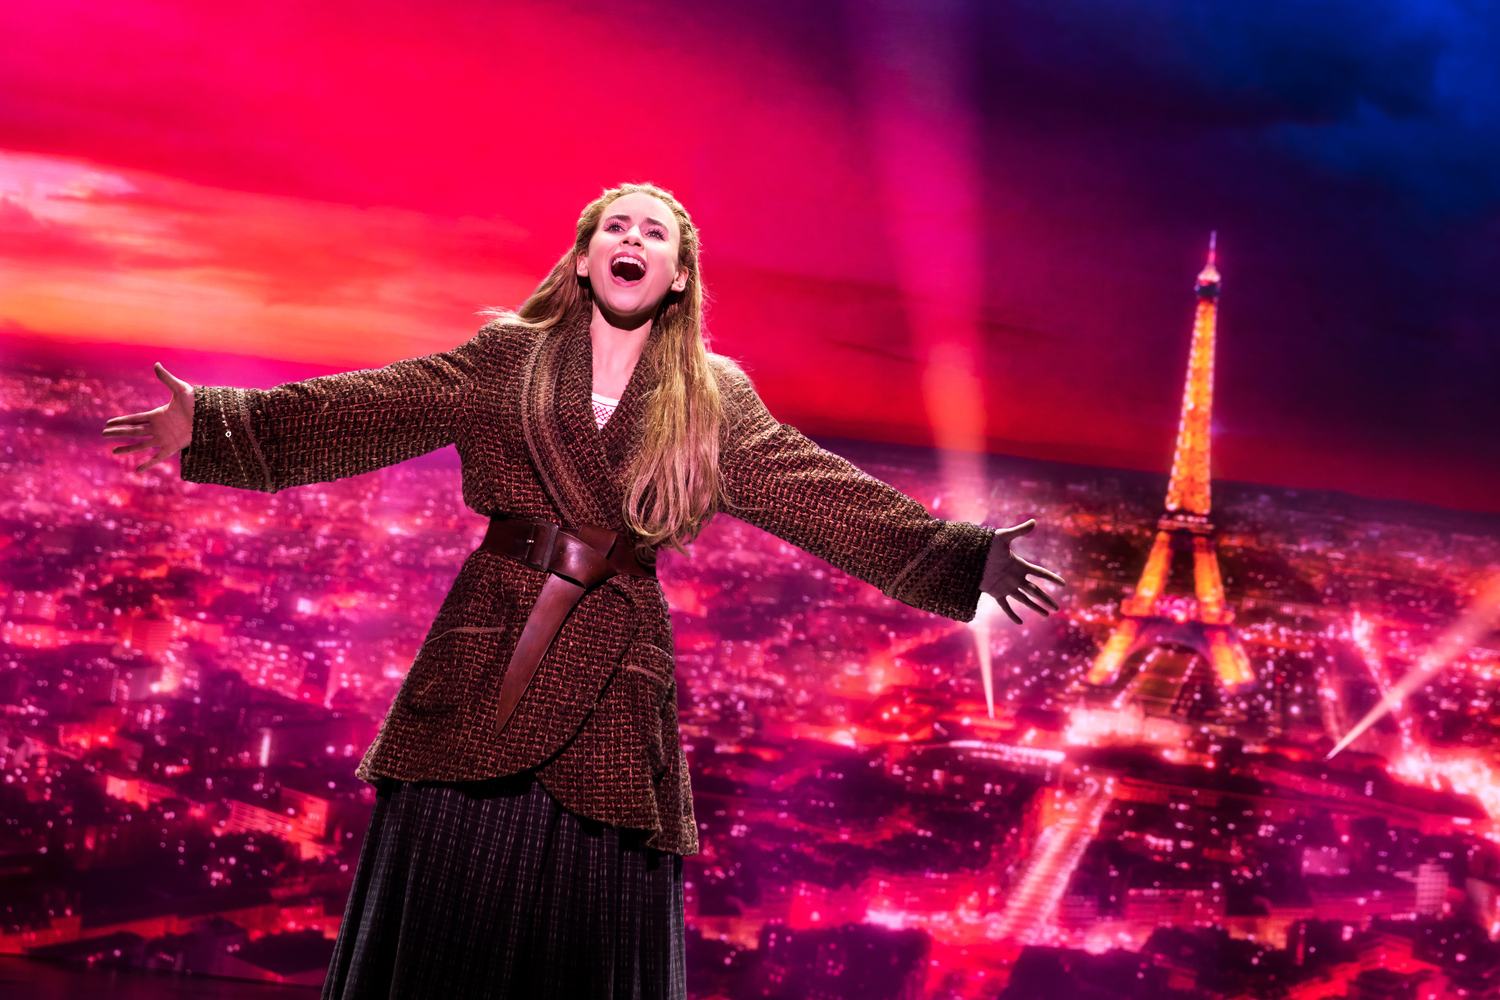 BWW Review: ANASTASIA at The Fisher Theatre Is A Whimsical And Captivating Adventure!